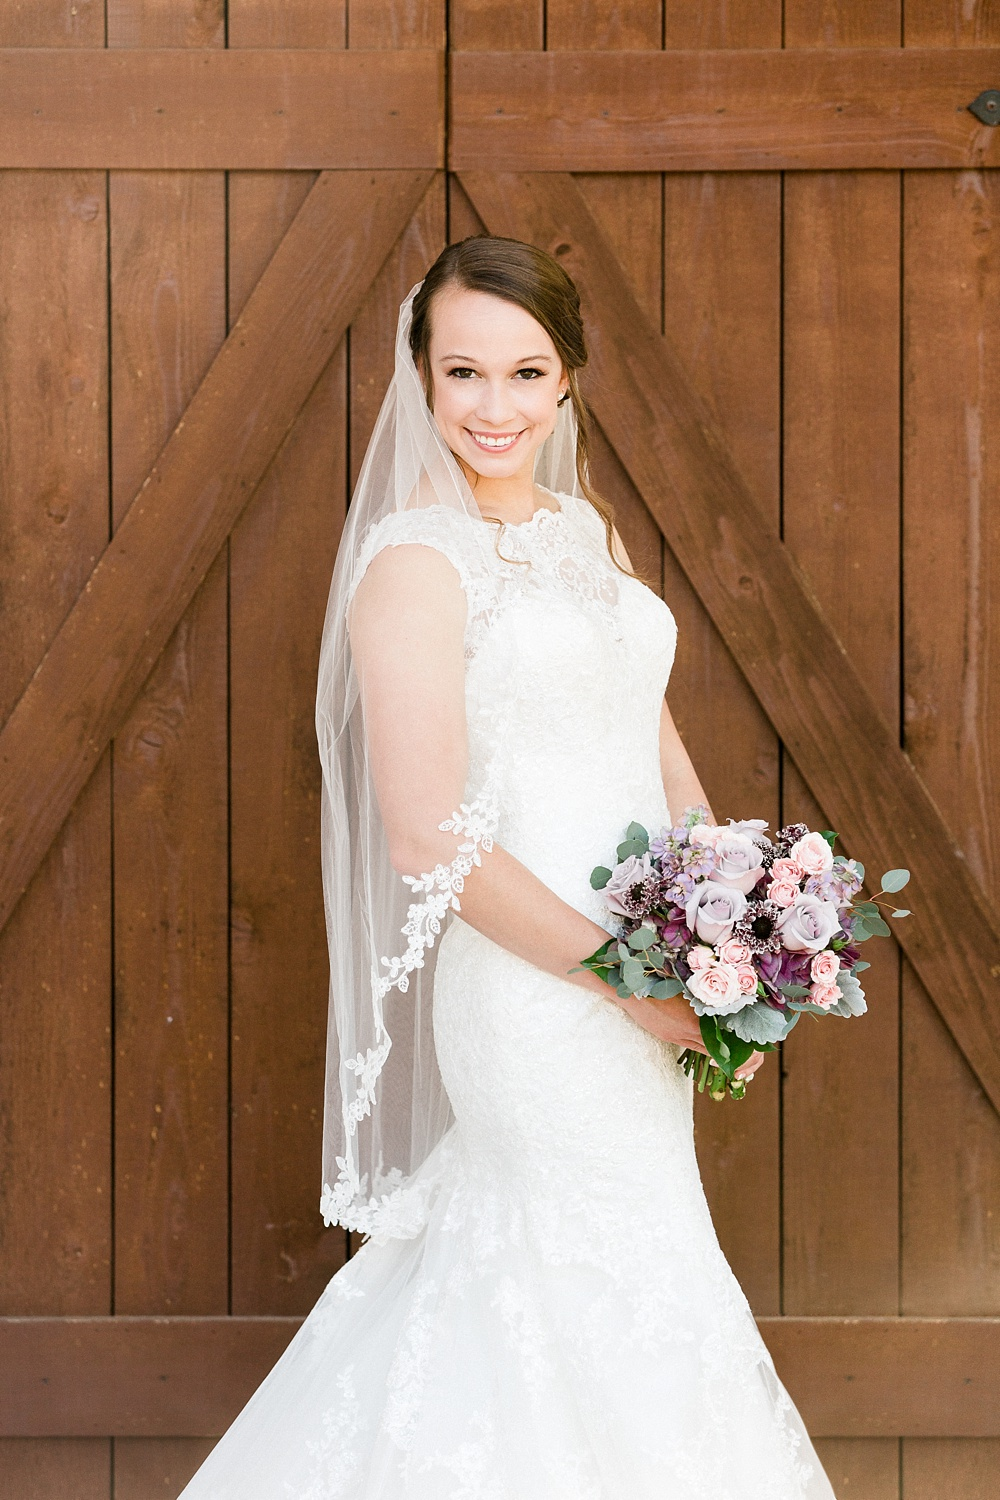 bridal portrait in front of the barn doors at the oaks at salem, apex, nc